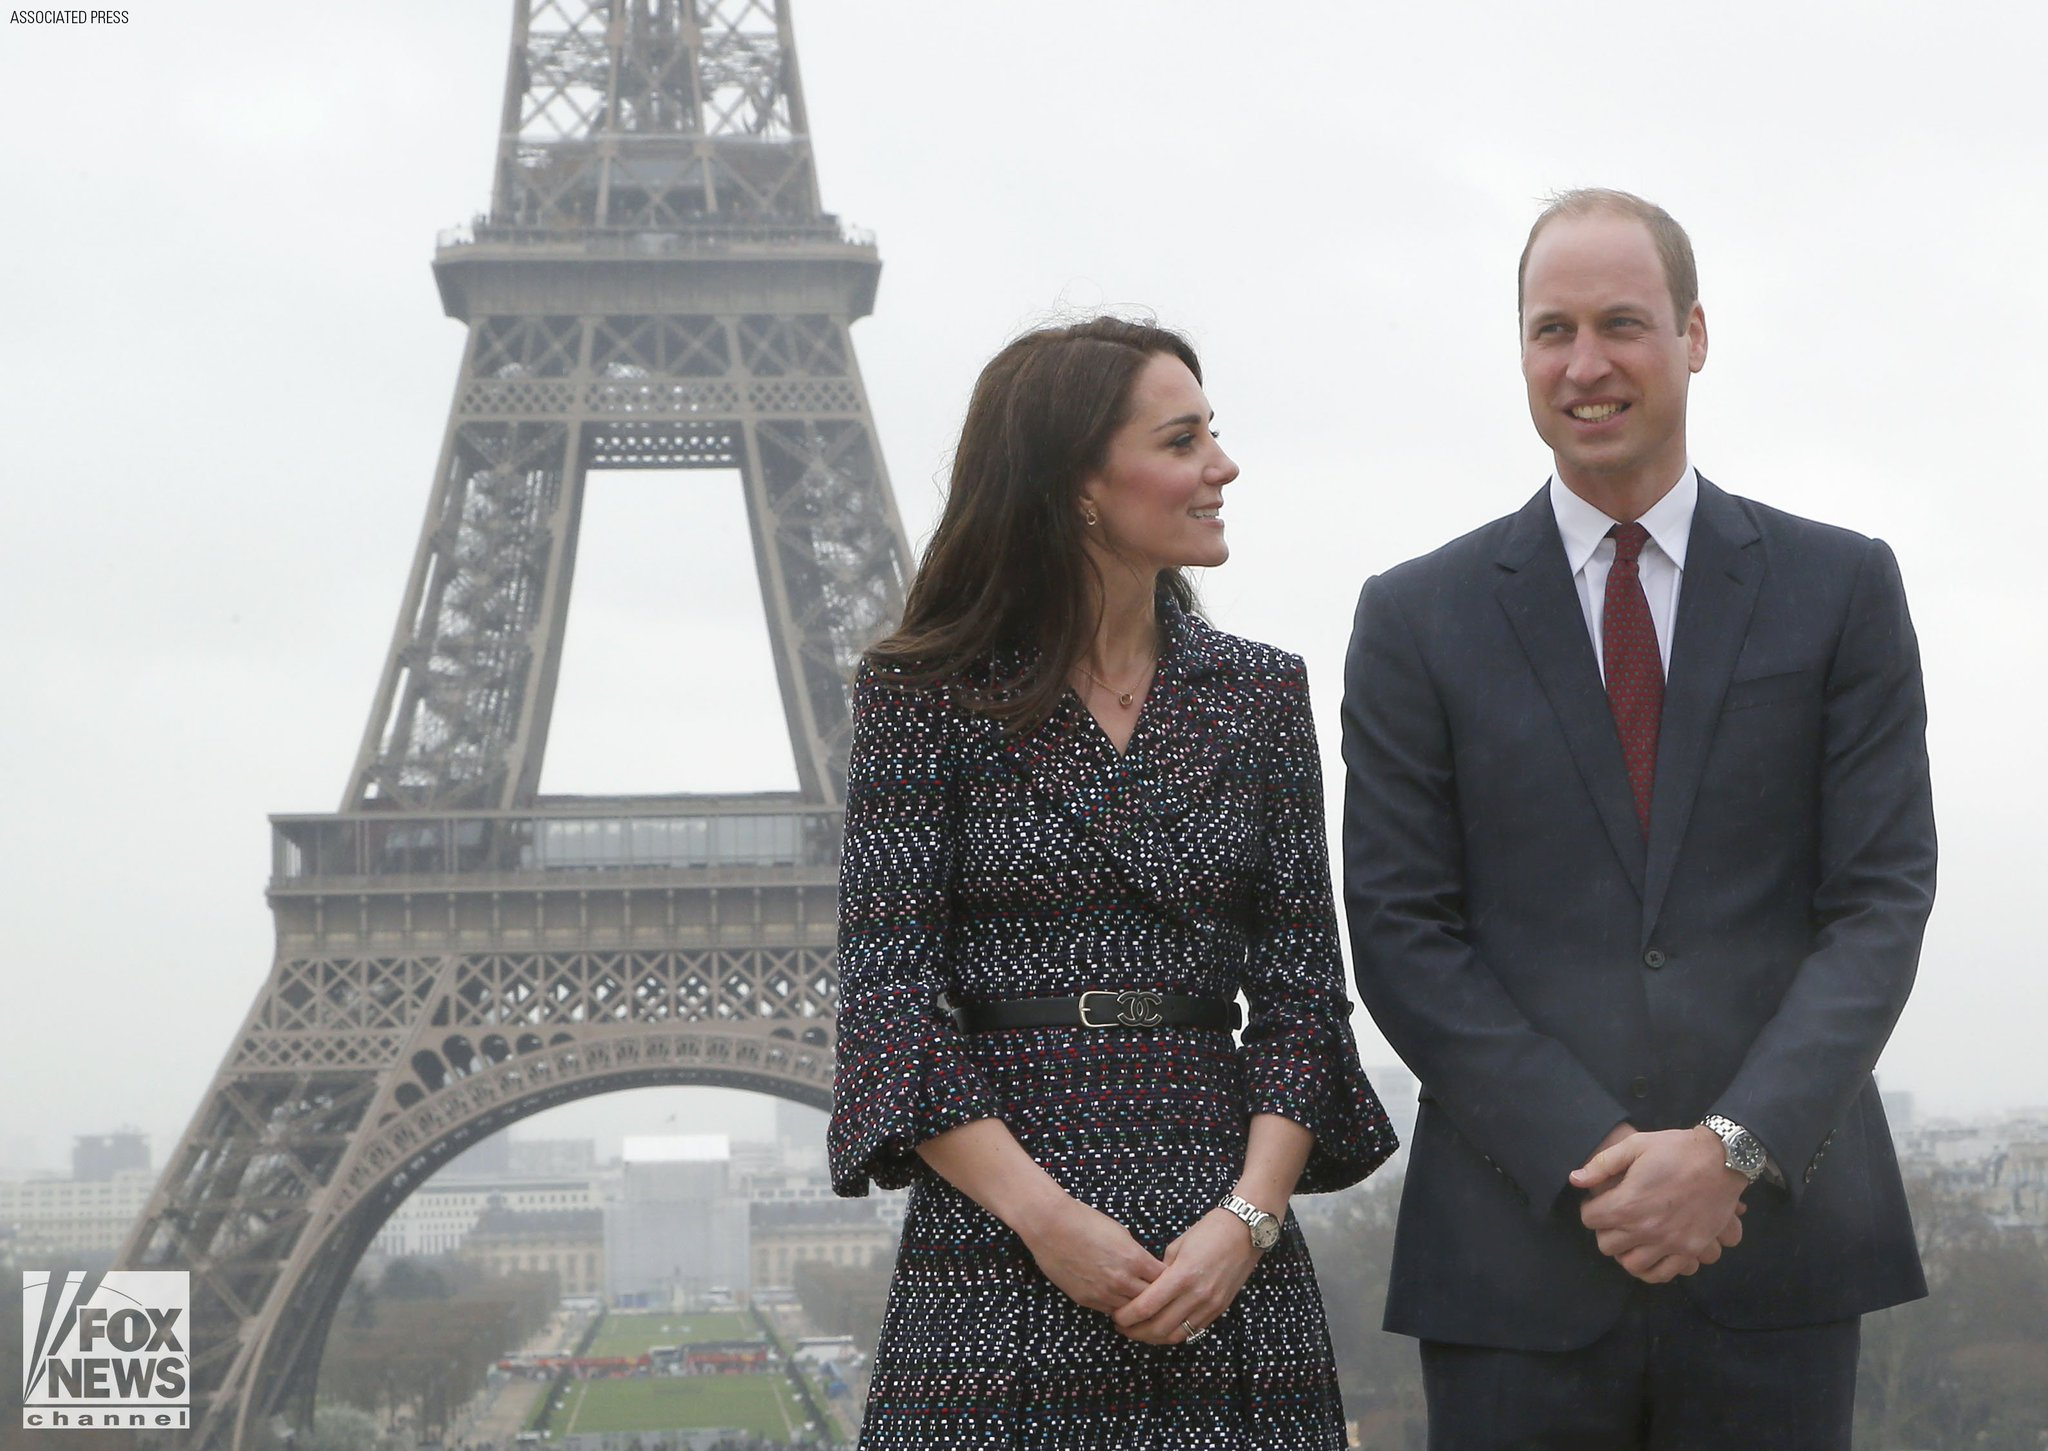 William and Kate meet survivors of Paris 2015 attacks https://t.co/kRicH1xc43 https://t.co/ksvqjjLrZ5